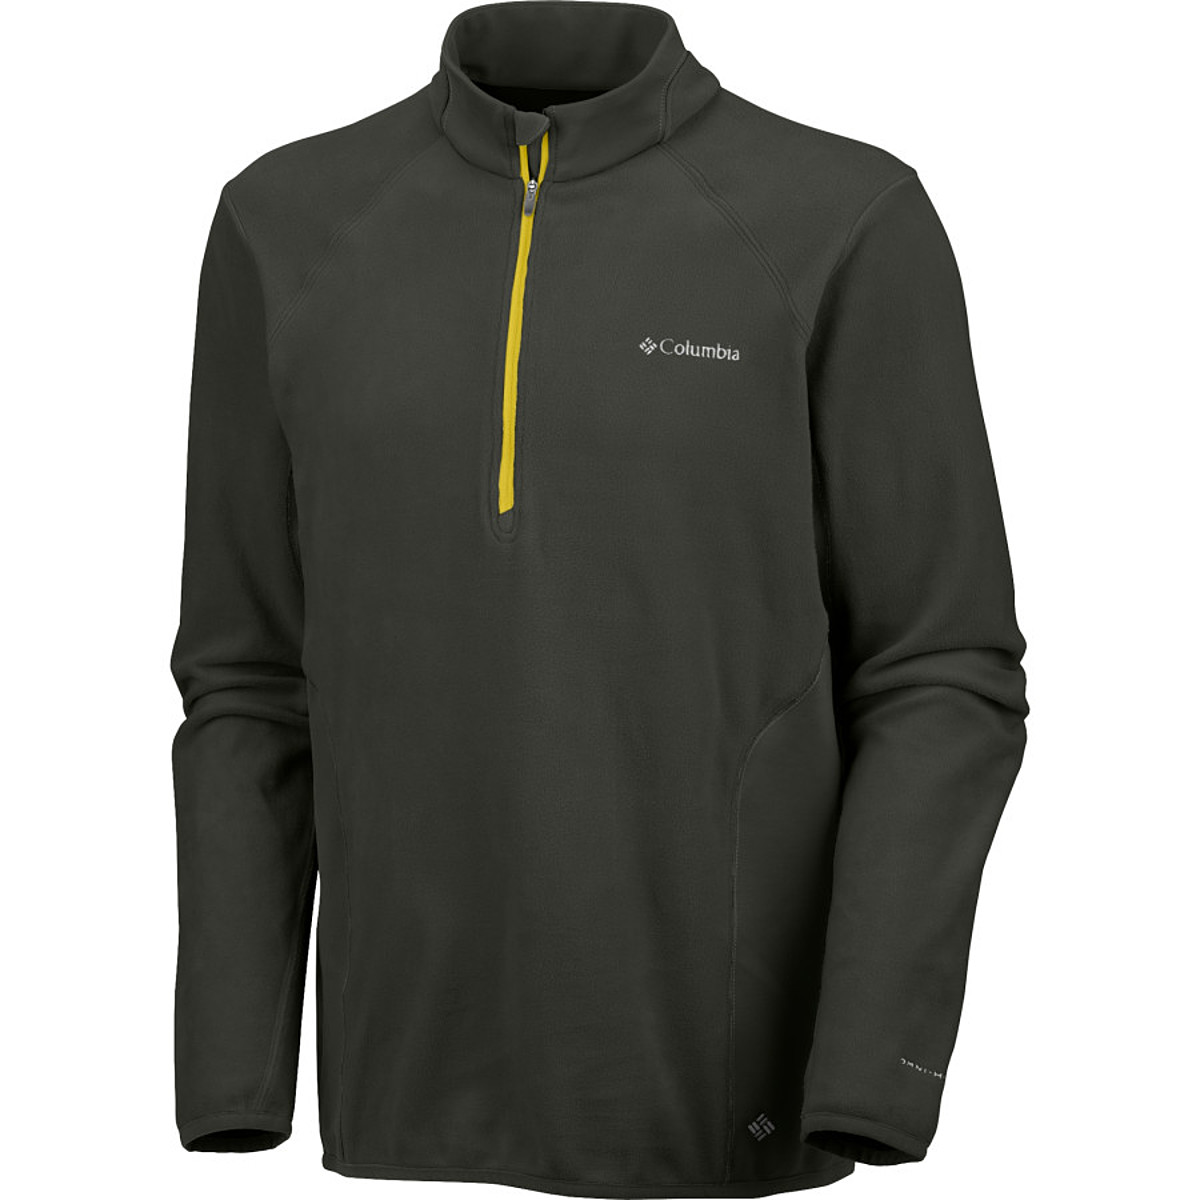 photo: Columbia Heat 360 II 1/2 Zip fleece top